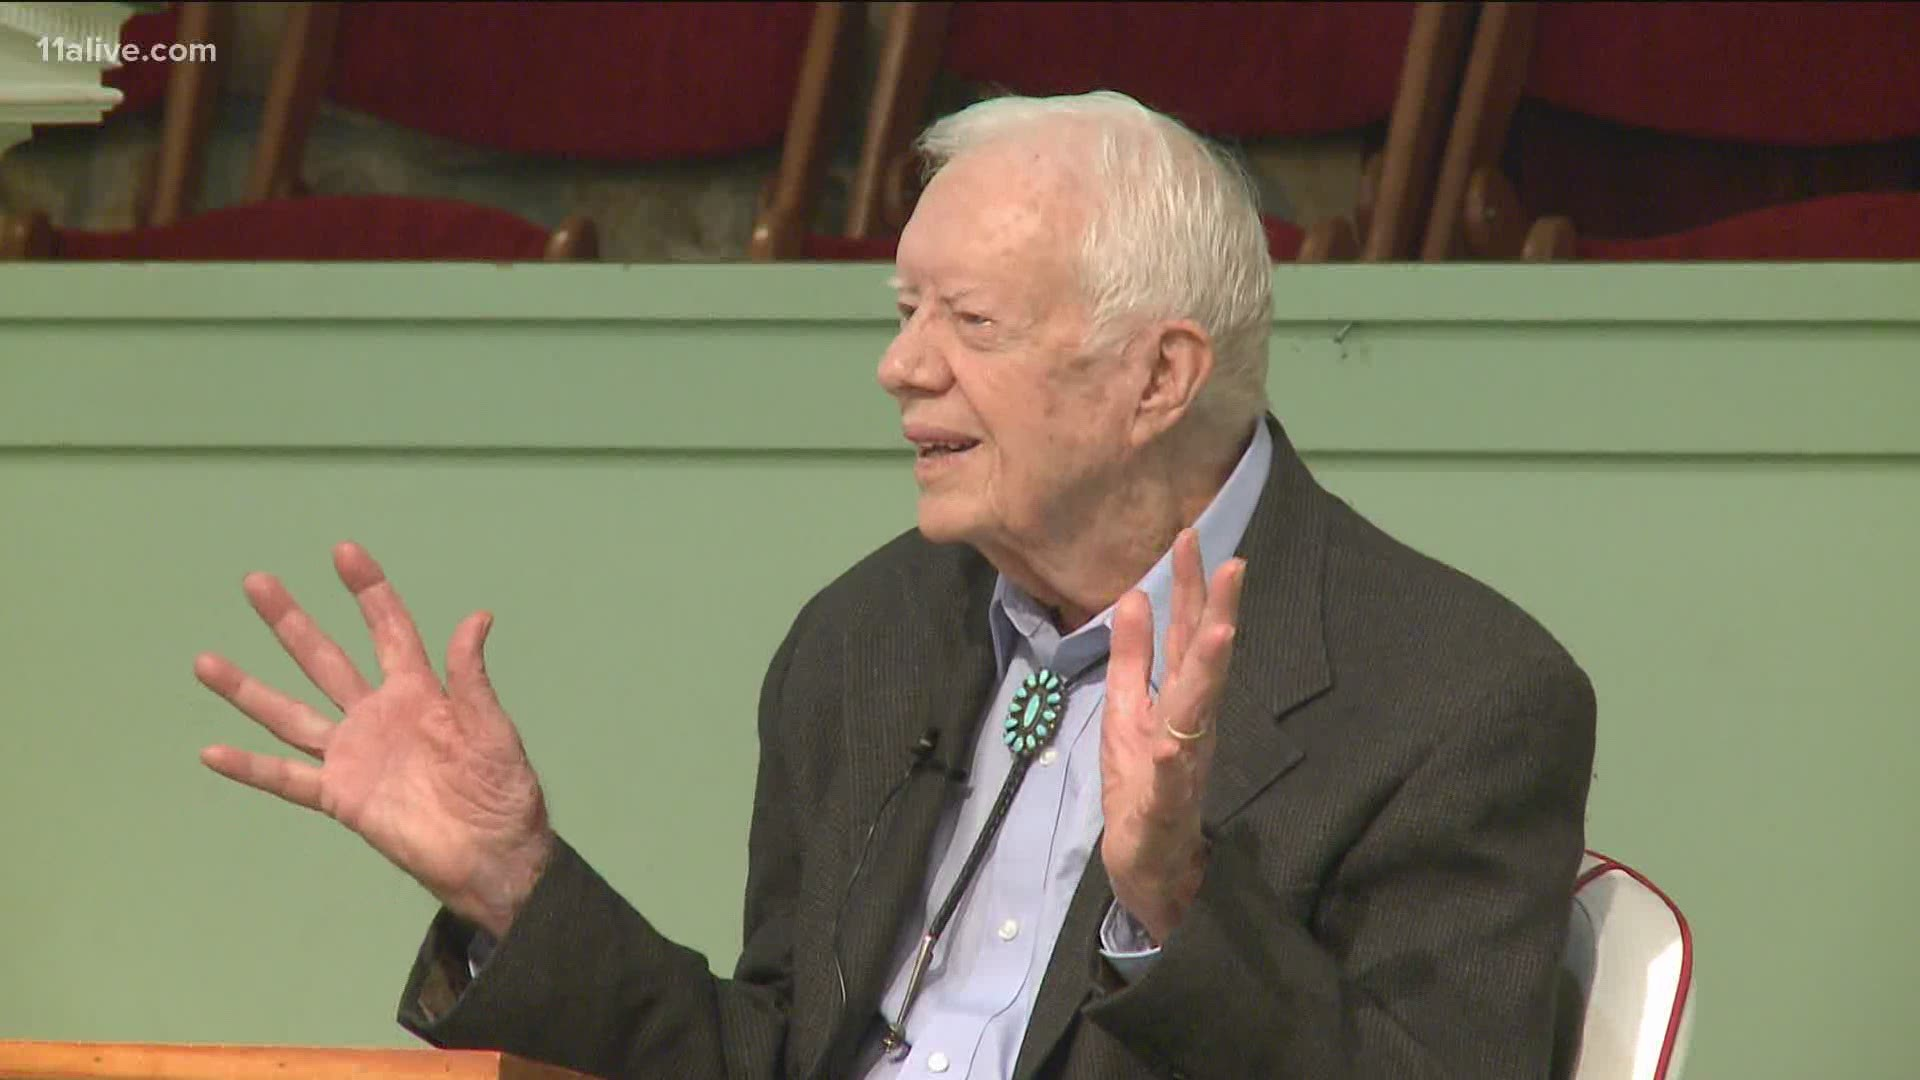 Jimmy Carter Sunday School Lessons Quietly Appear To Be Over 11alive Com